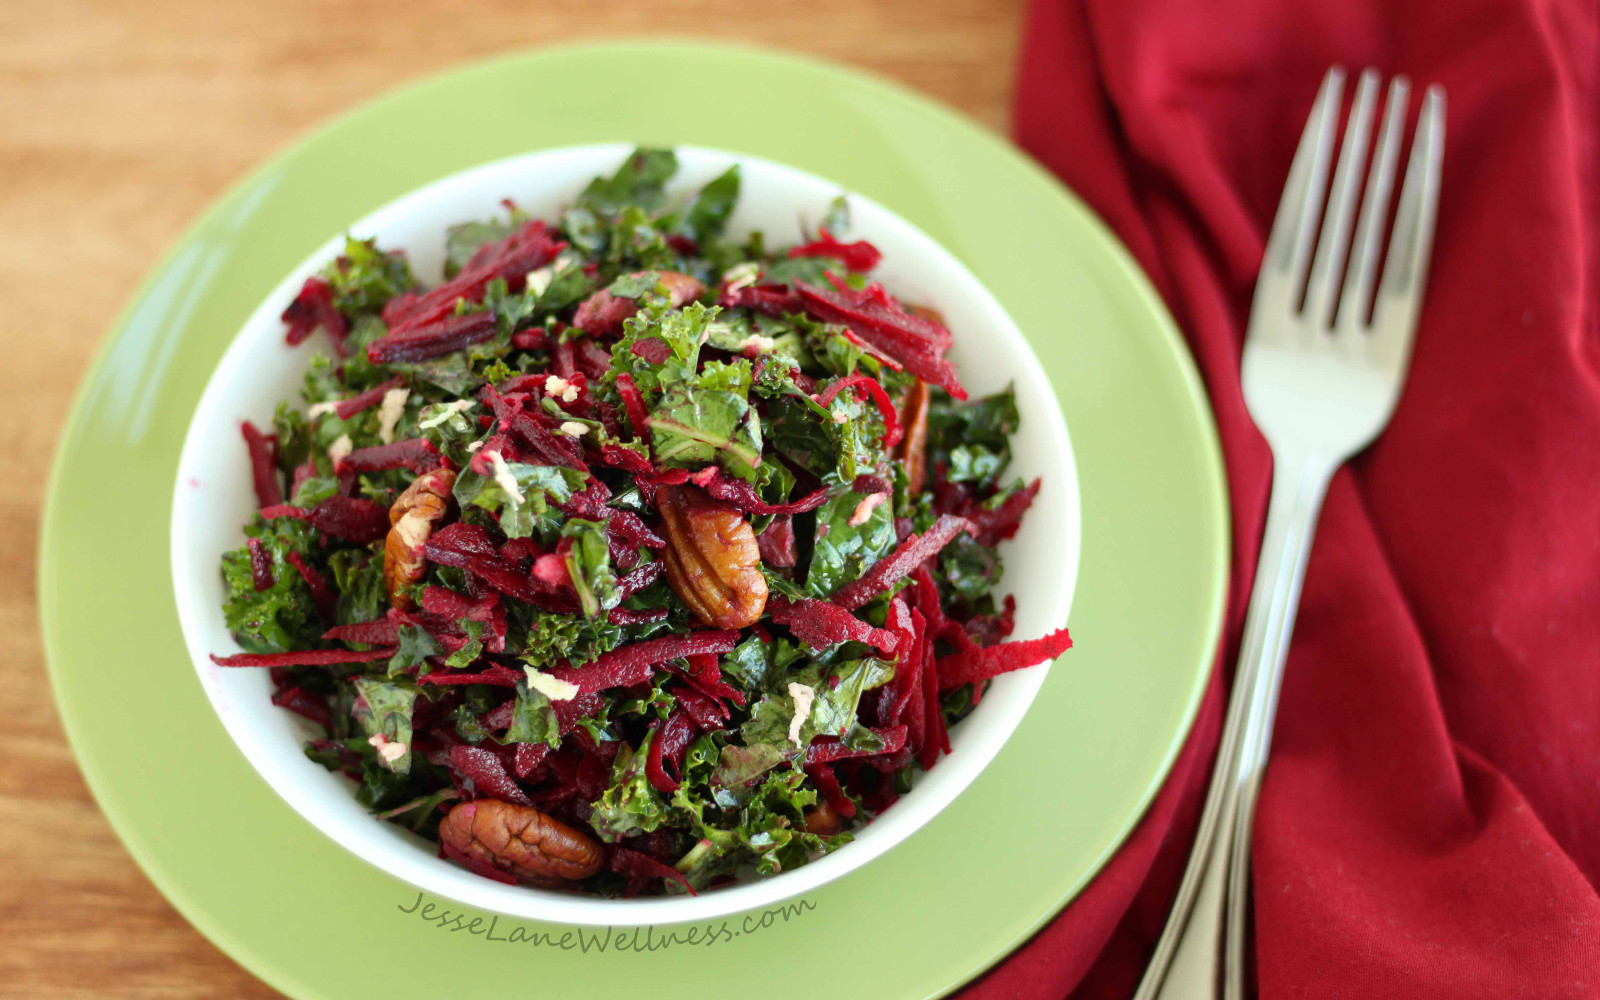 Kale, Beet, and Pecan Salad With Ginger Dressing